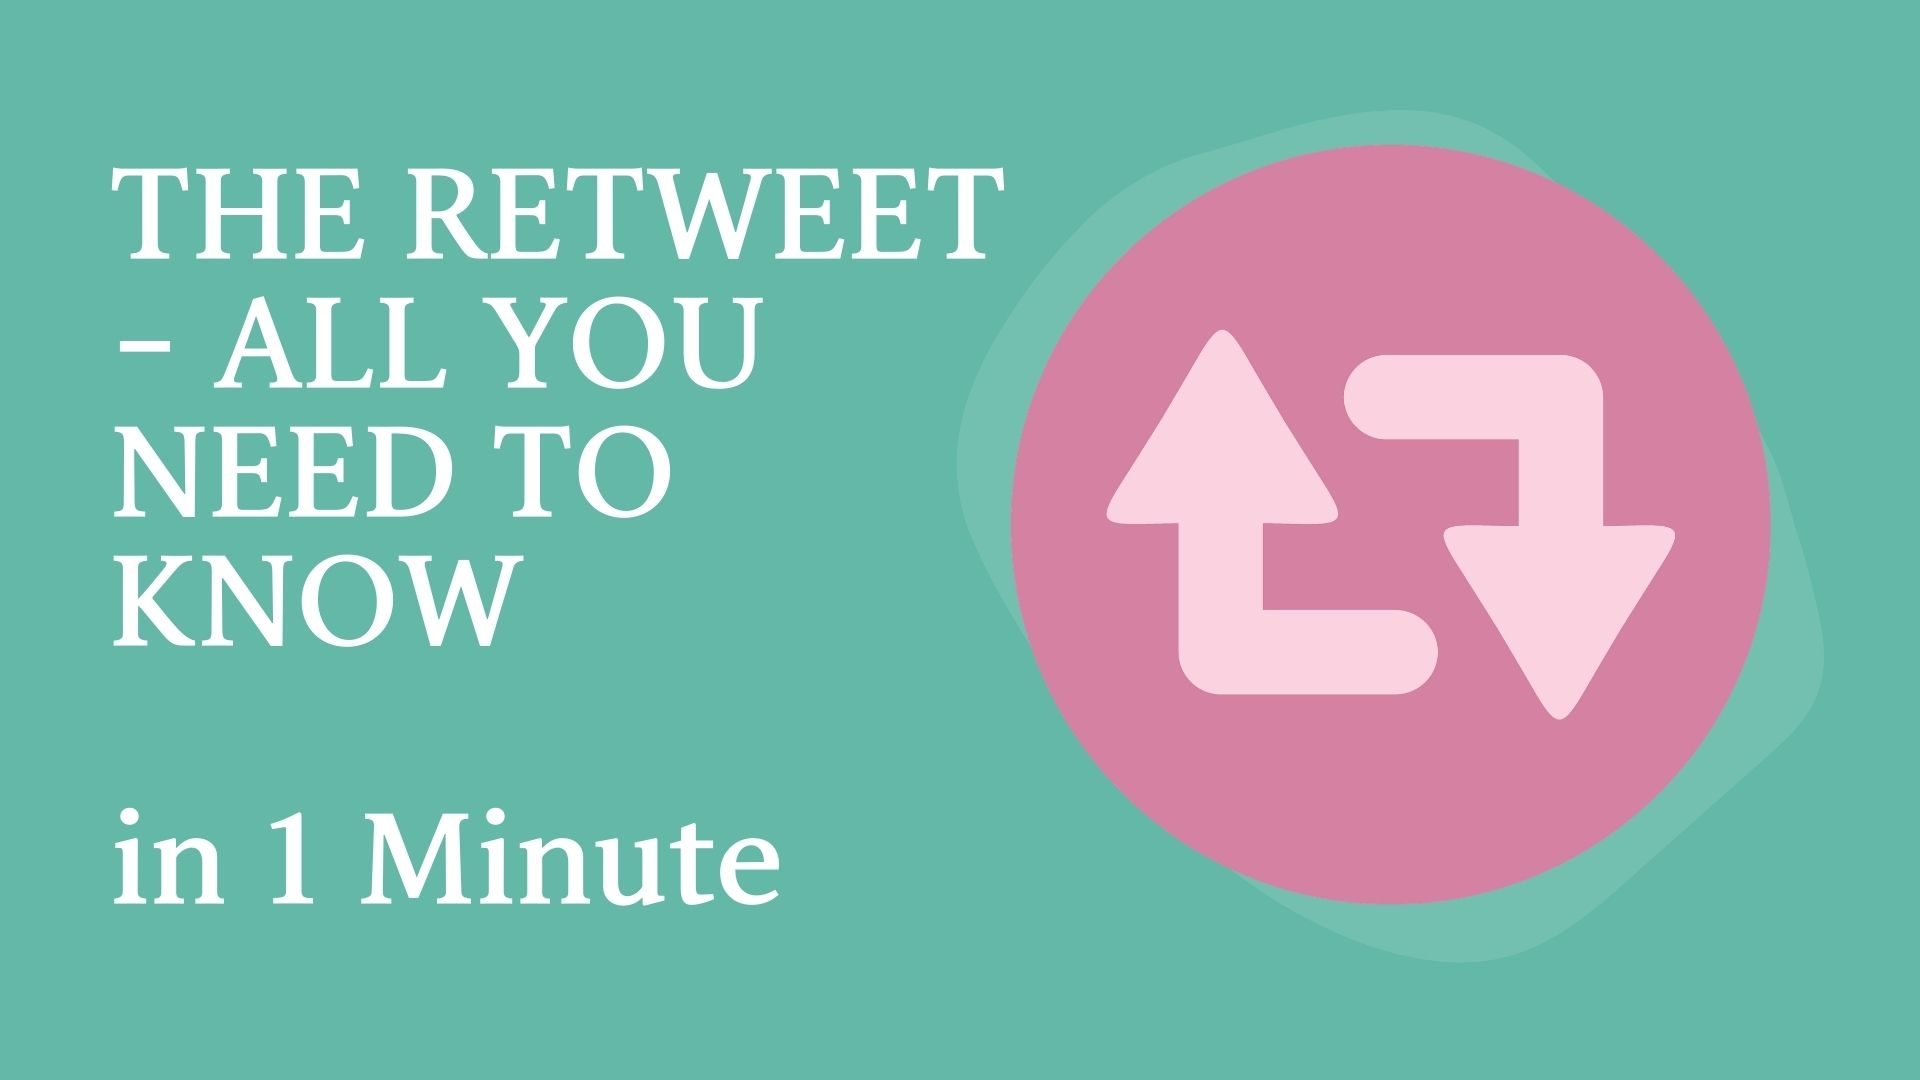 THE RETWEET - ALL YOU NEED TO KNOW in 1 Minute